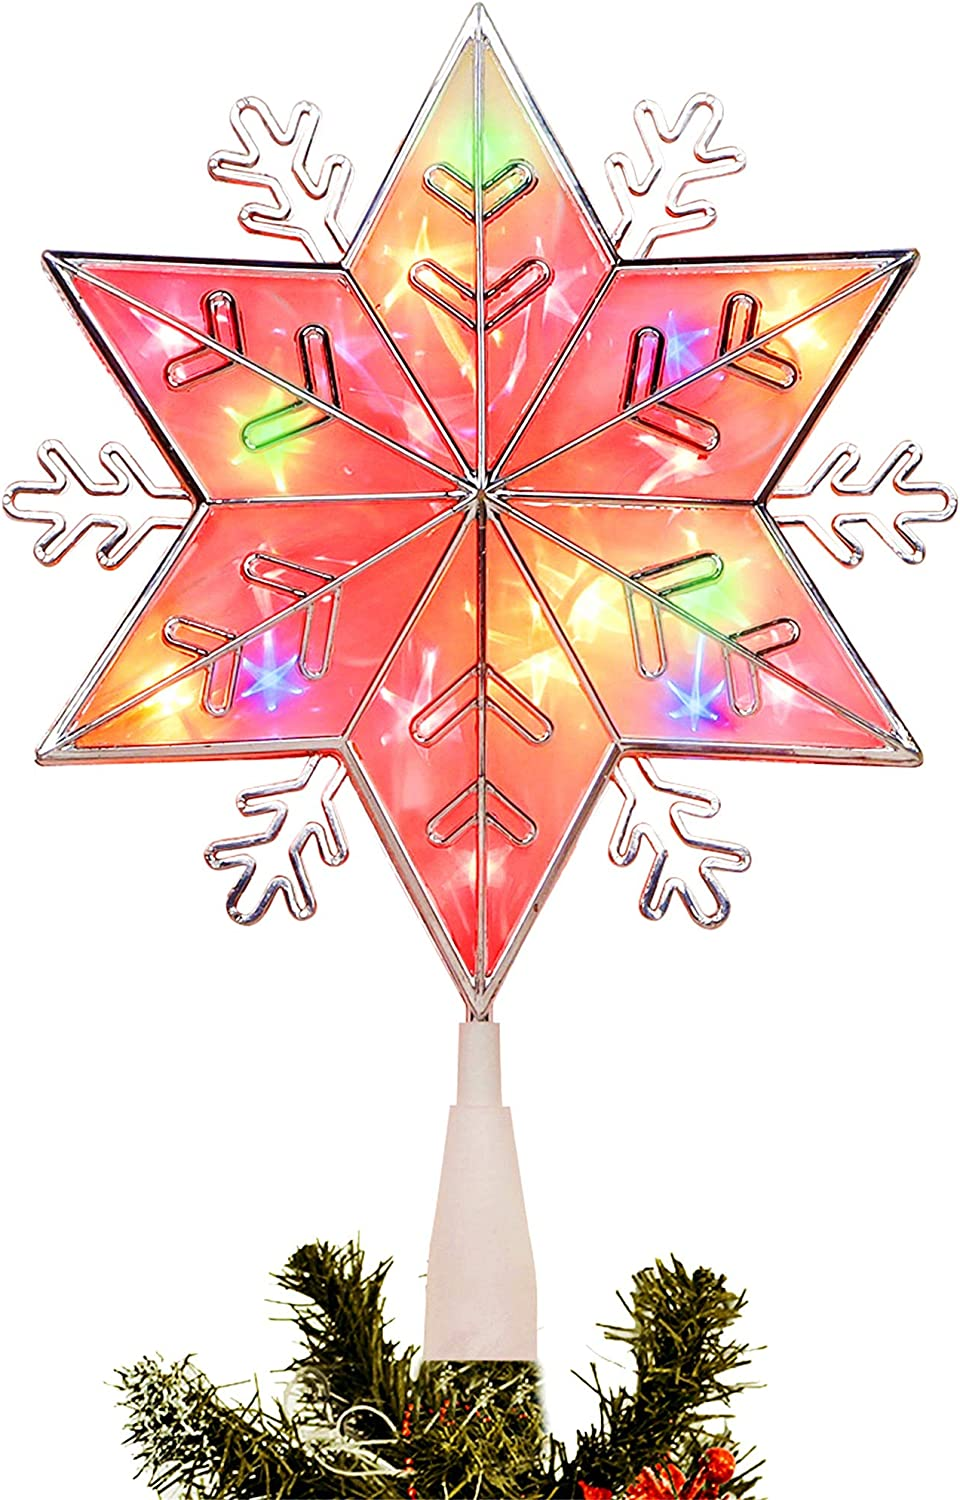 LJLNION Lighted Christmas Tree Topper, Colorful Plug in Star Treetop with 20 Incandescent Mini Fairy Lights, Holiday Christmas Tree Decorations